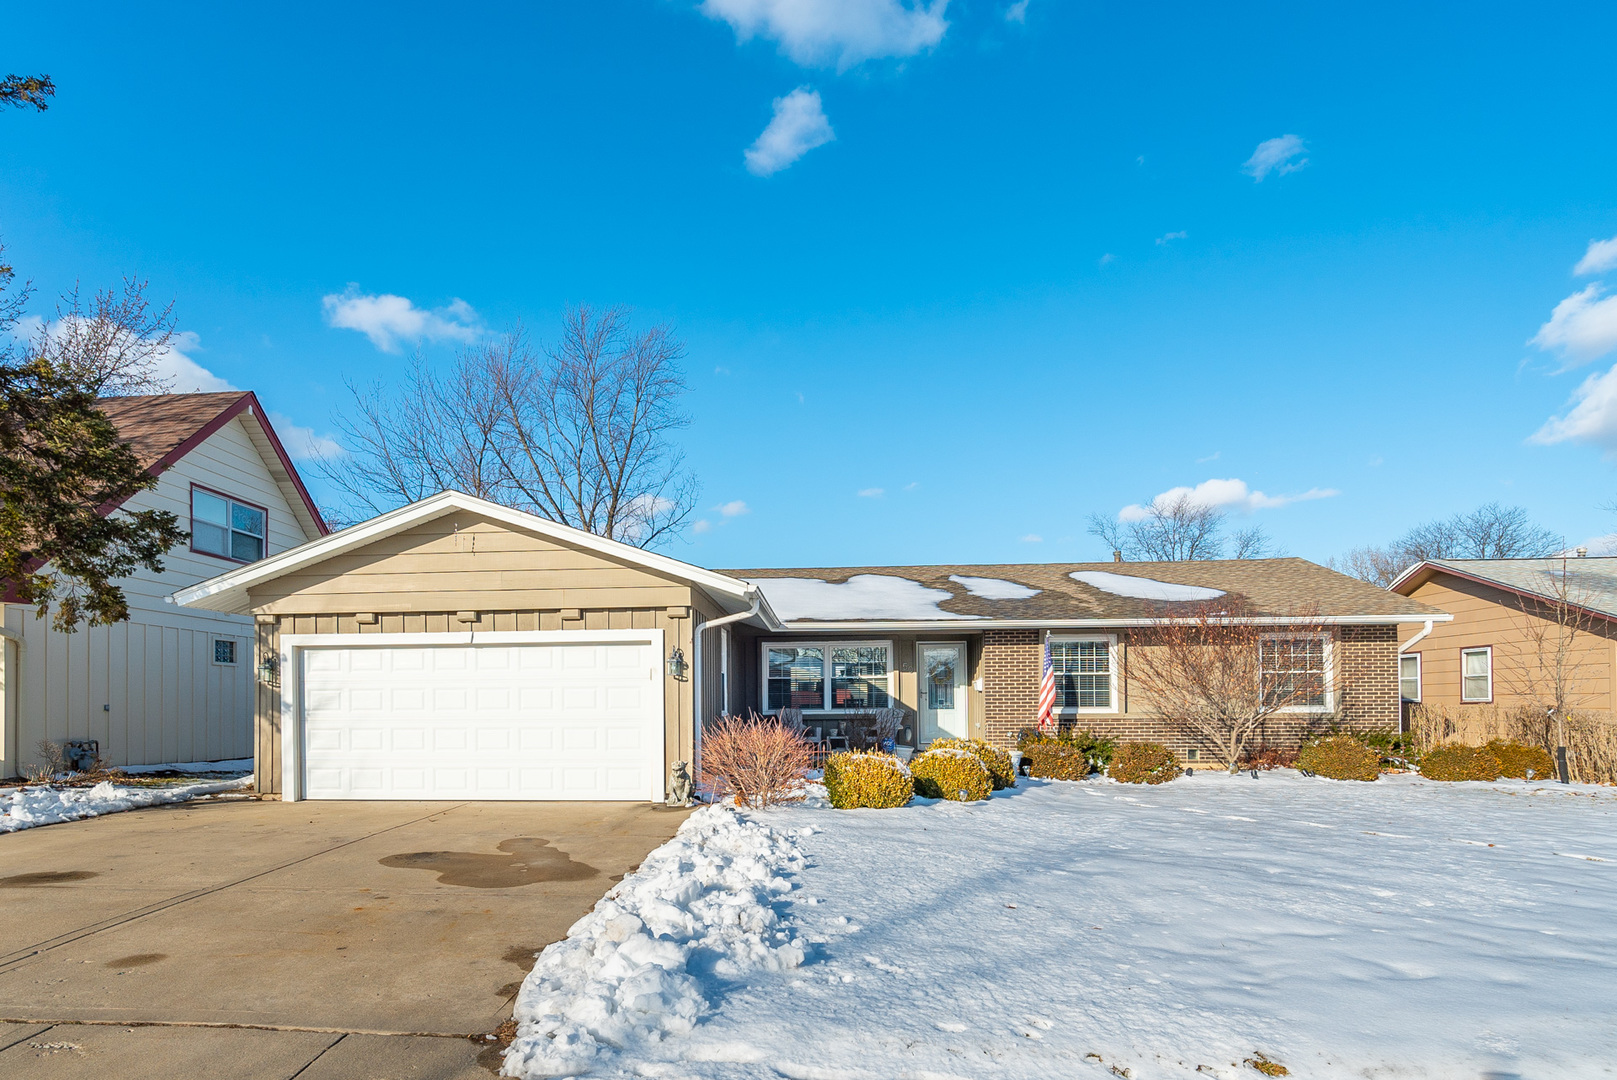 50 Walpole Road, Elk Grove Village in Cook County, IL 60007 Home for Sale